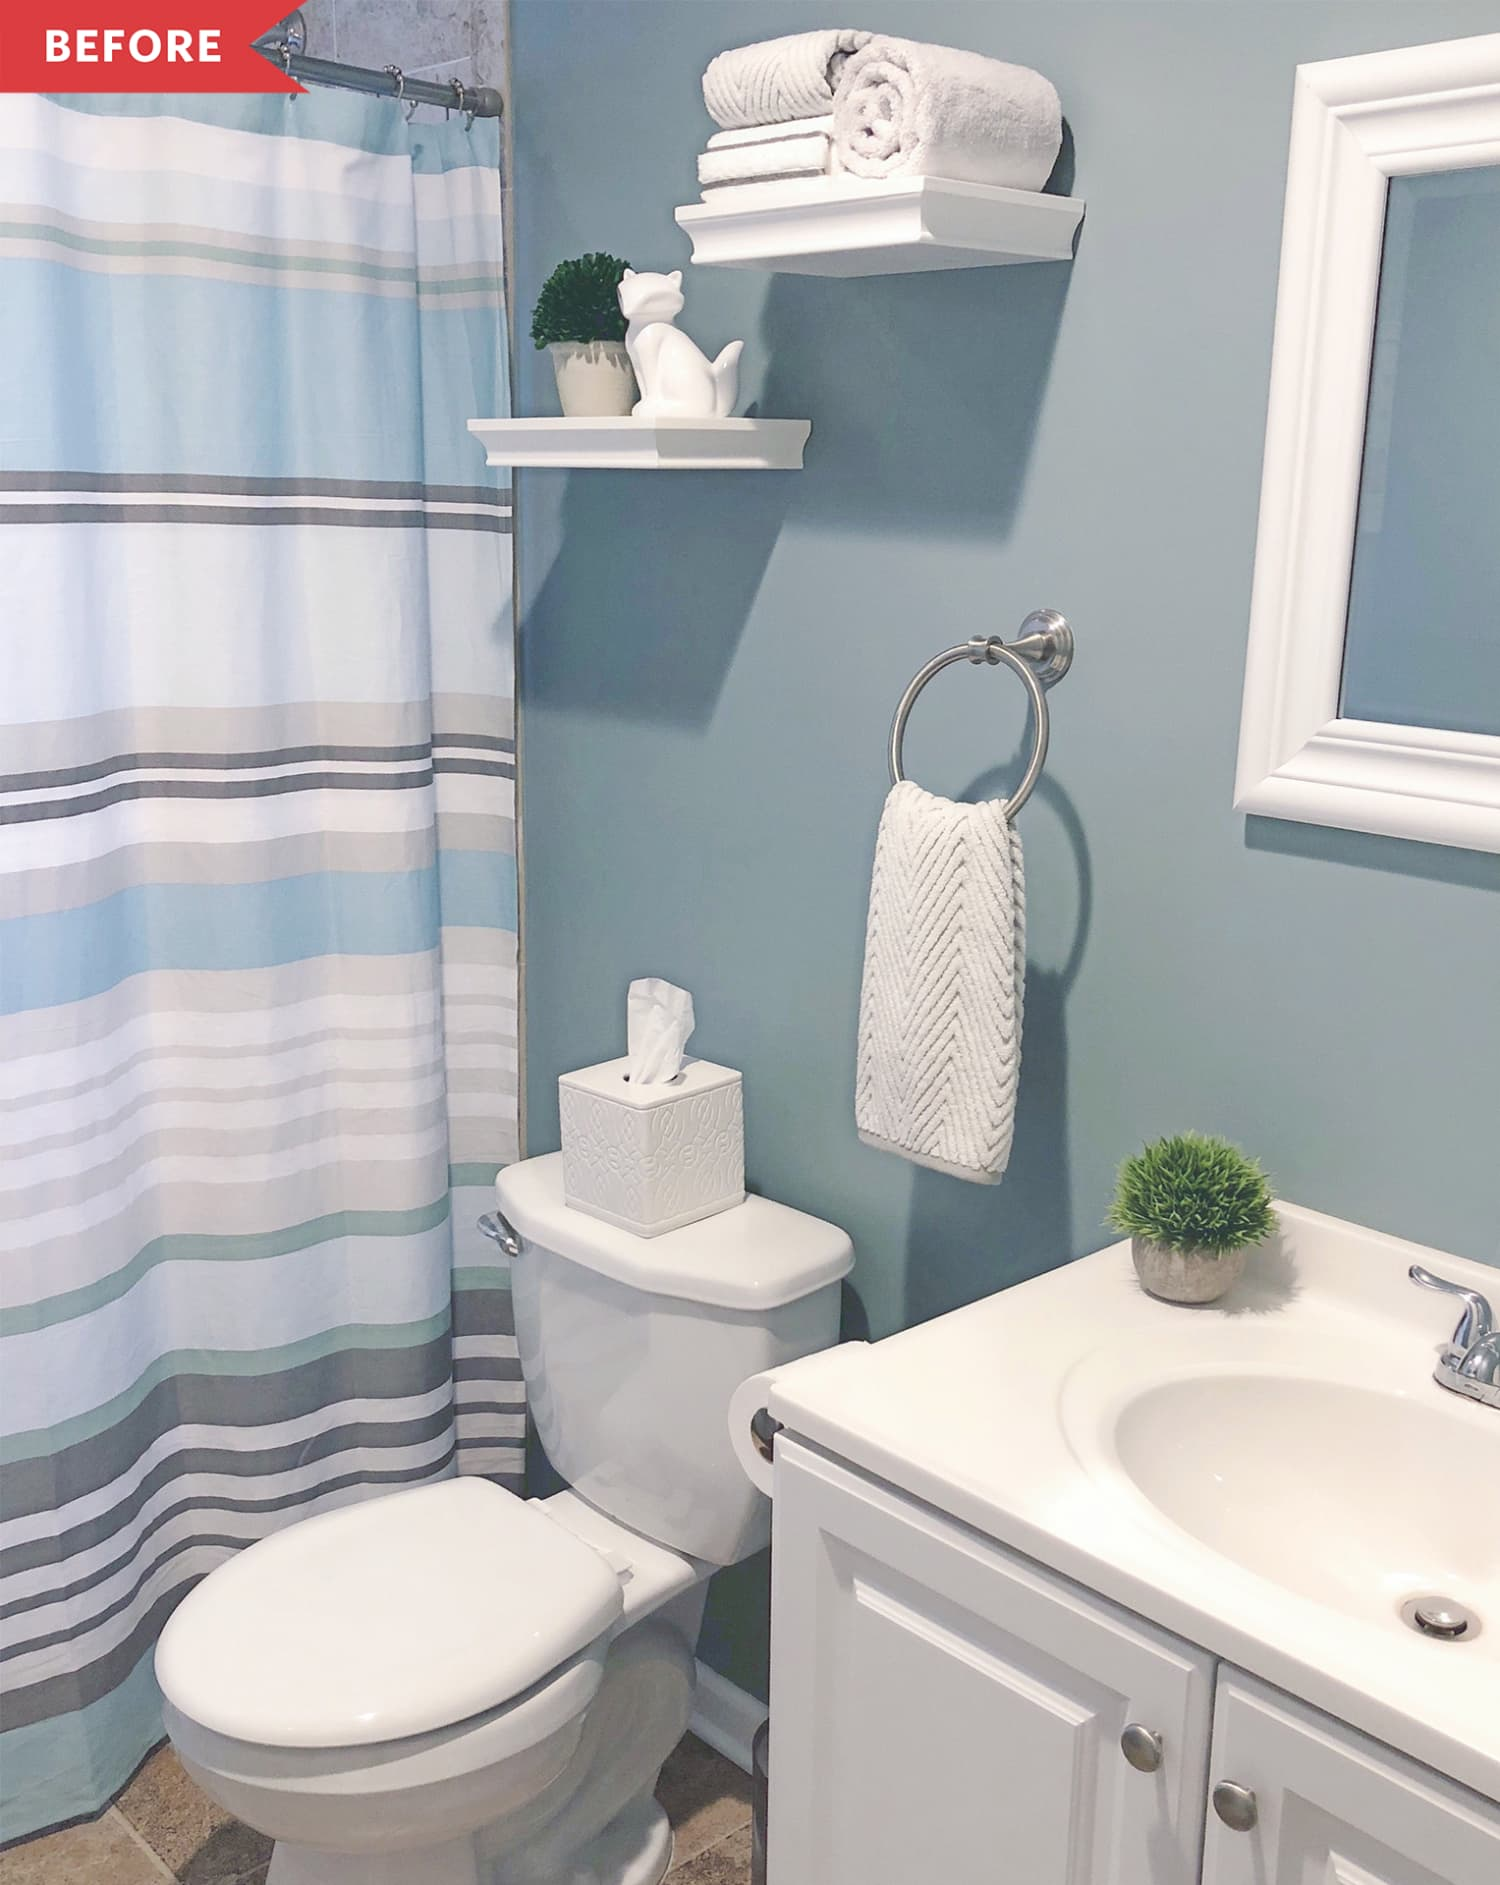 Before and After: This $400 Bathroom Redo Is Made of 8 Super Simple Elements